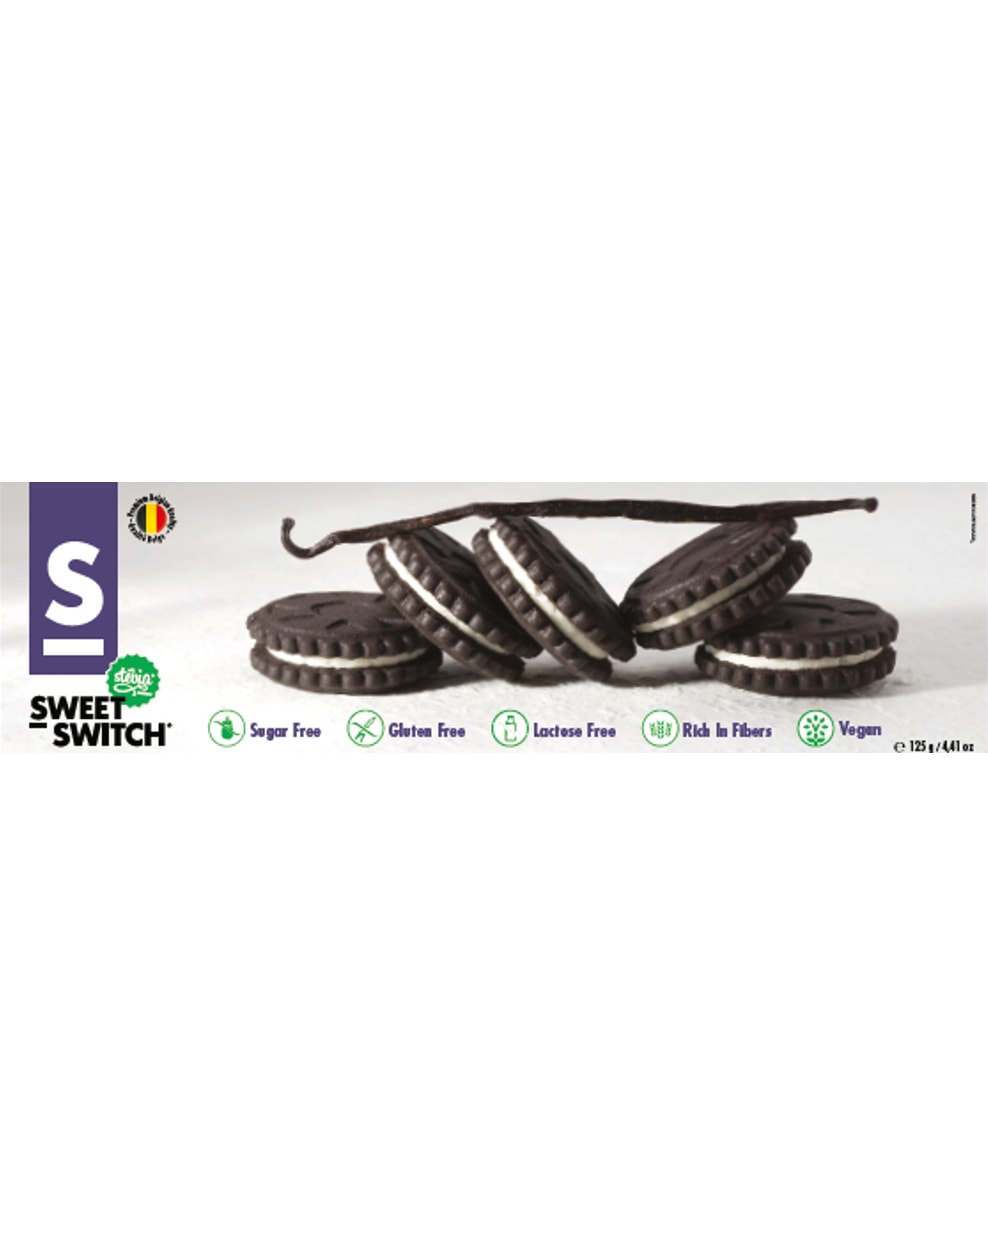 sweet_switch_black_and_white_cookies